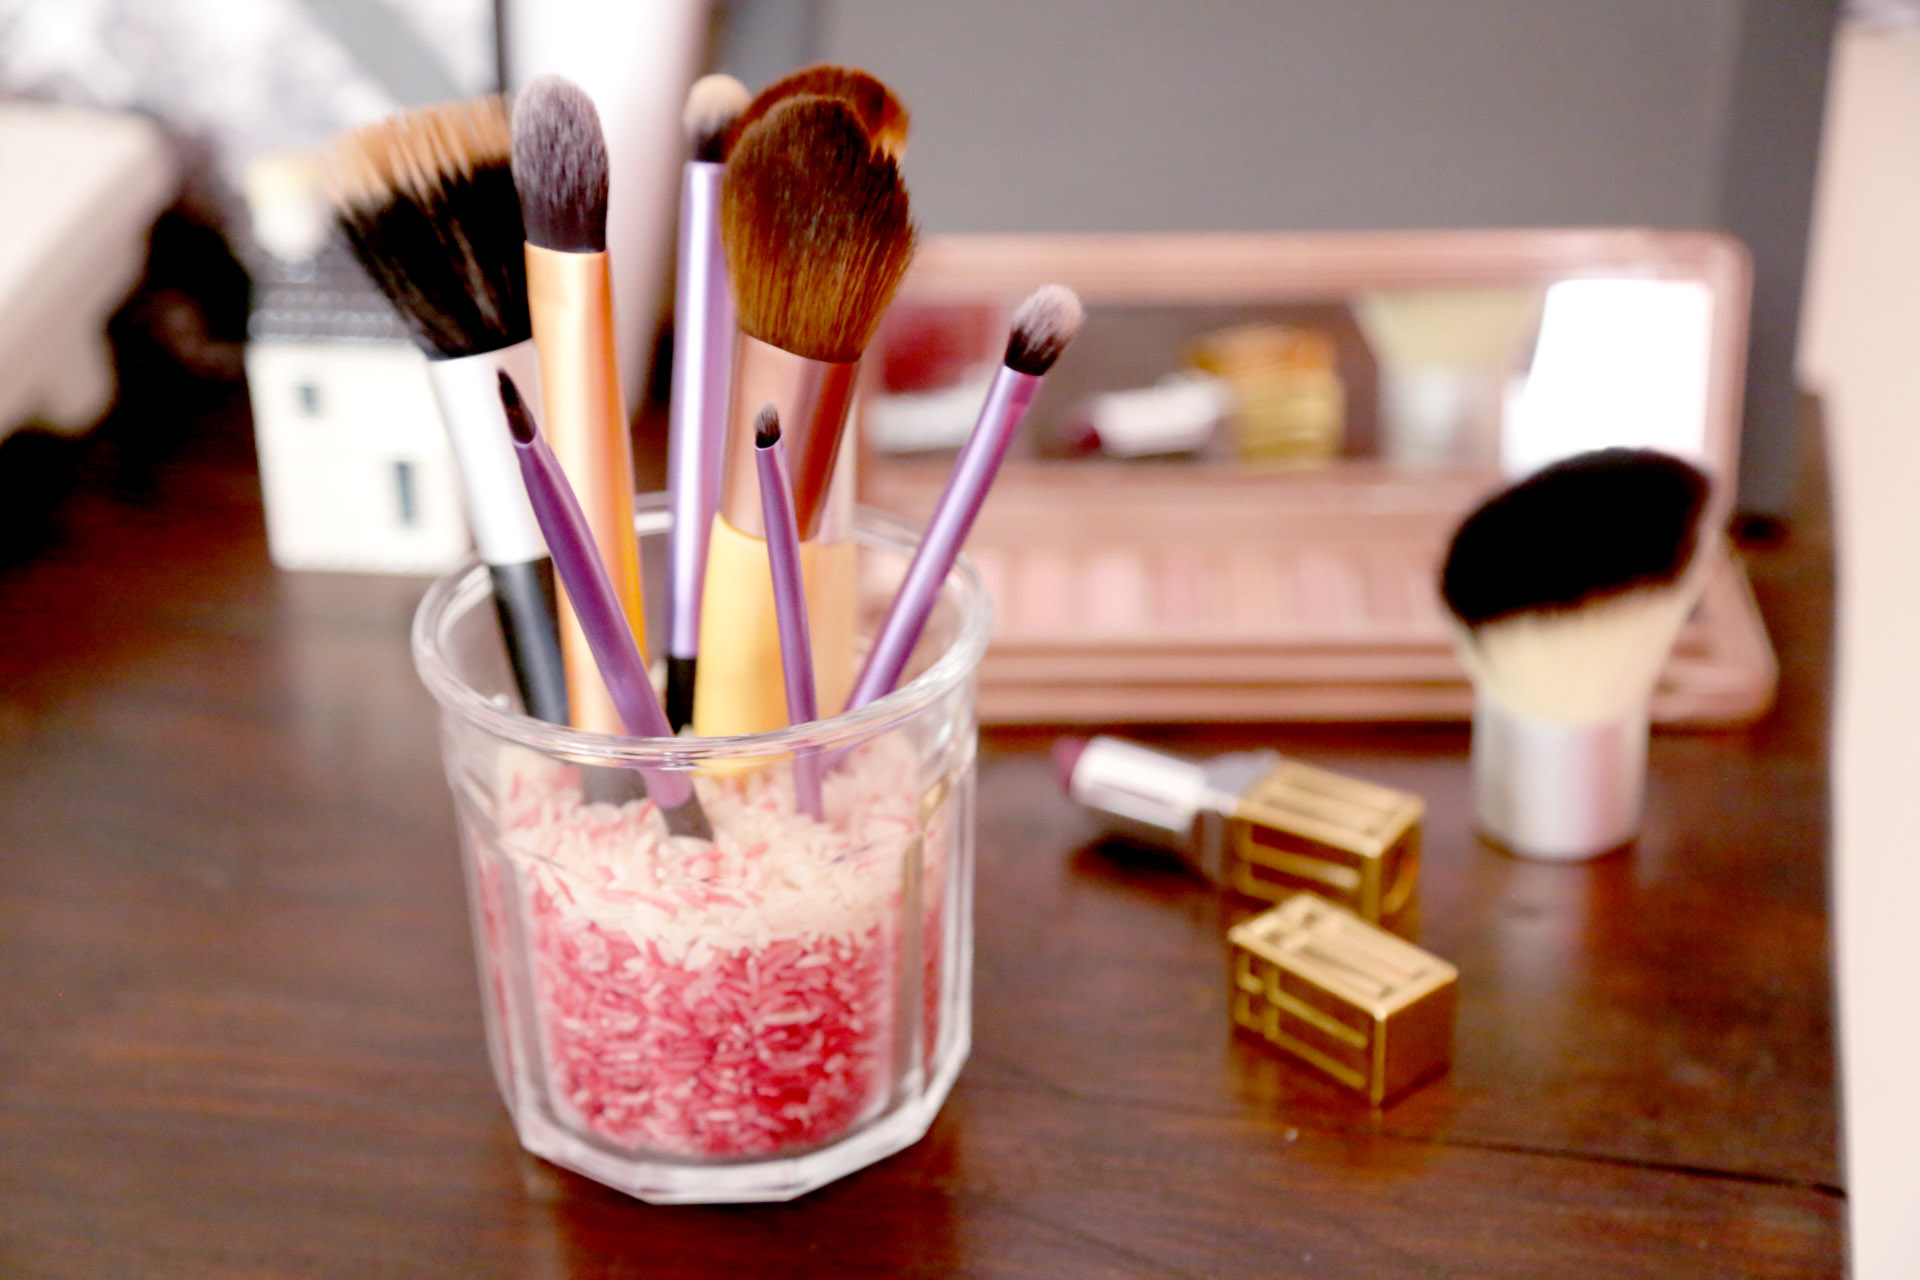 Tippy Tuesday - Storing makeup brushes